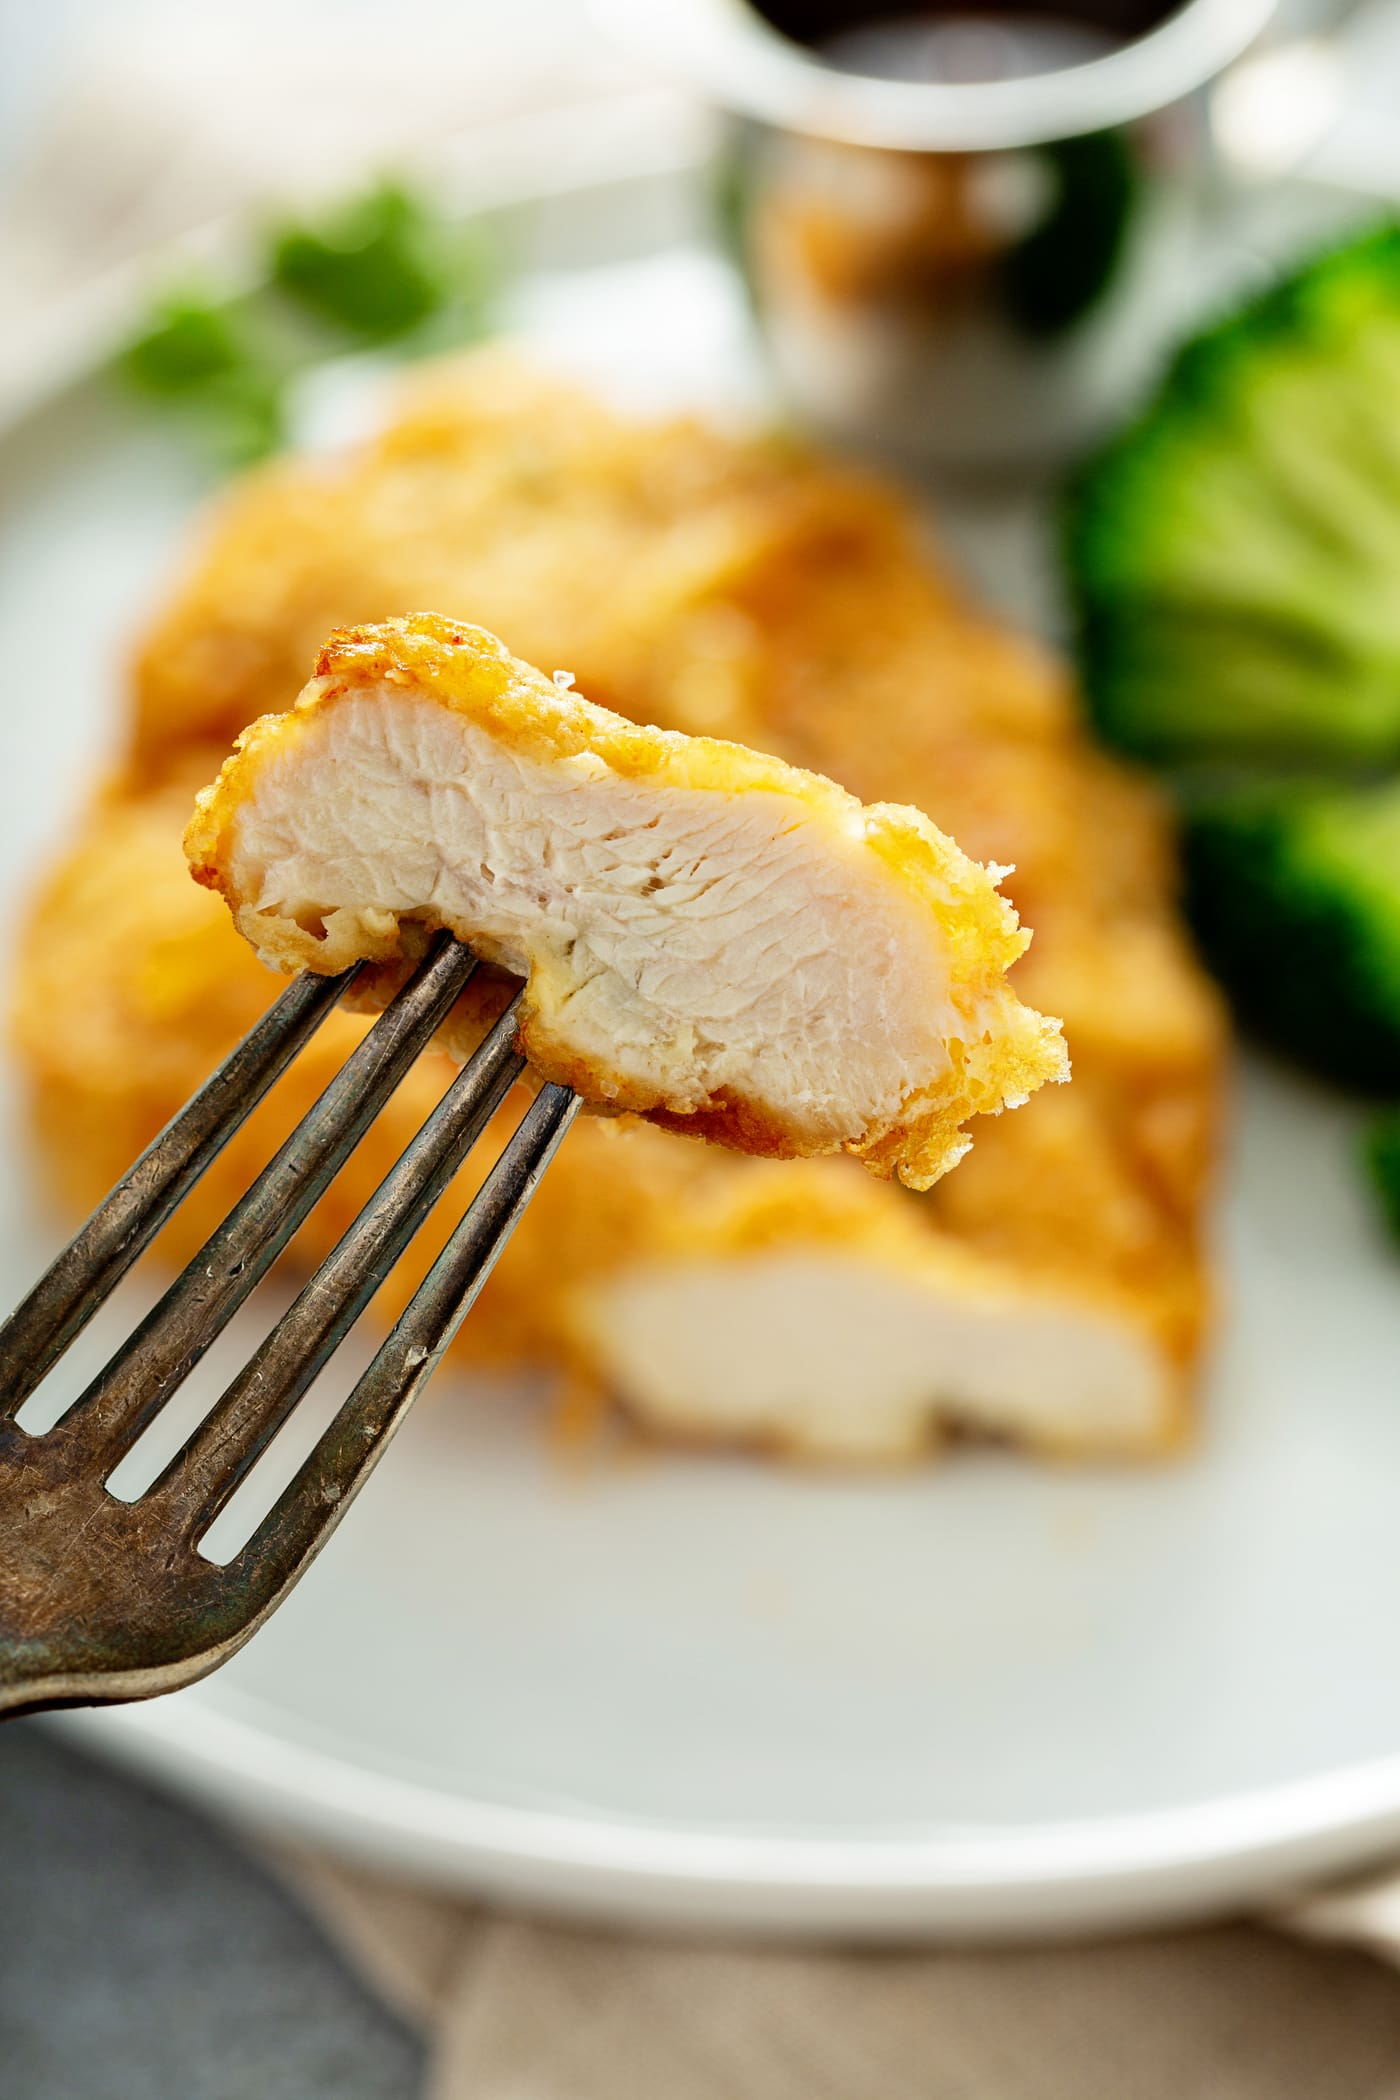 A golden brown fried chicken breast with a slice cut off and held up in the tines of a fork. There is broccoli beside the chicken on the plate.